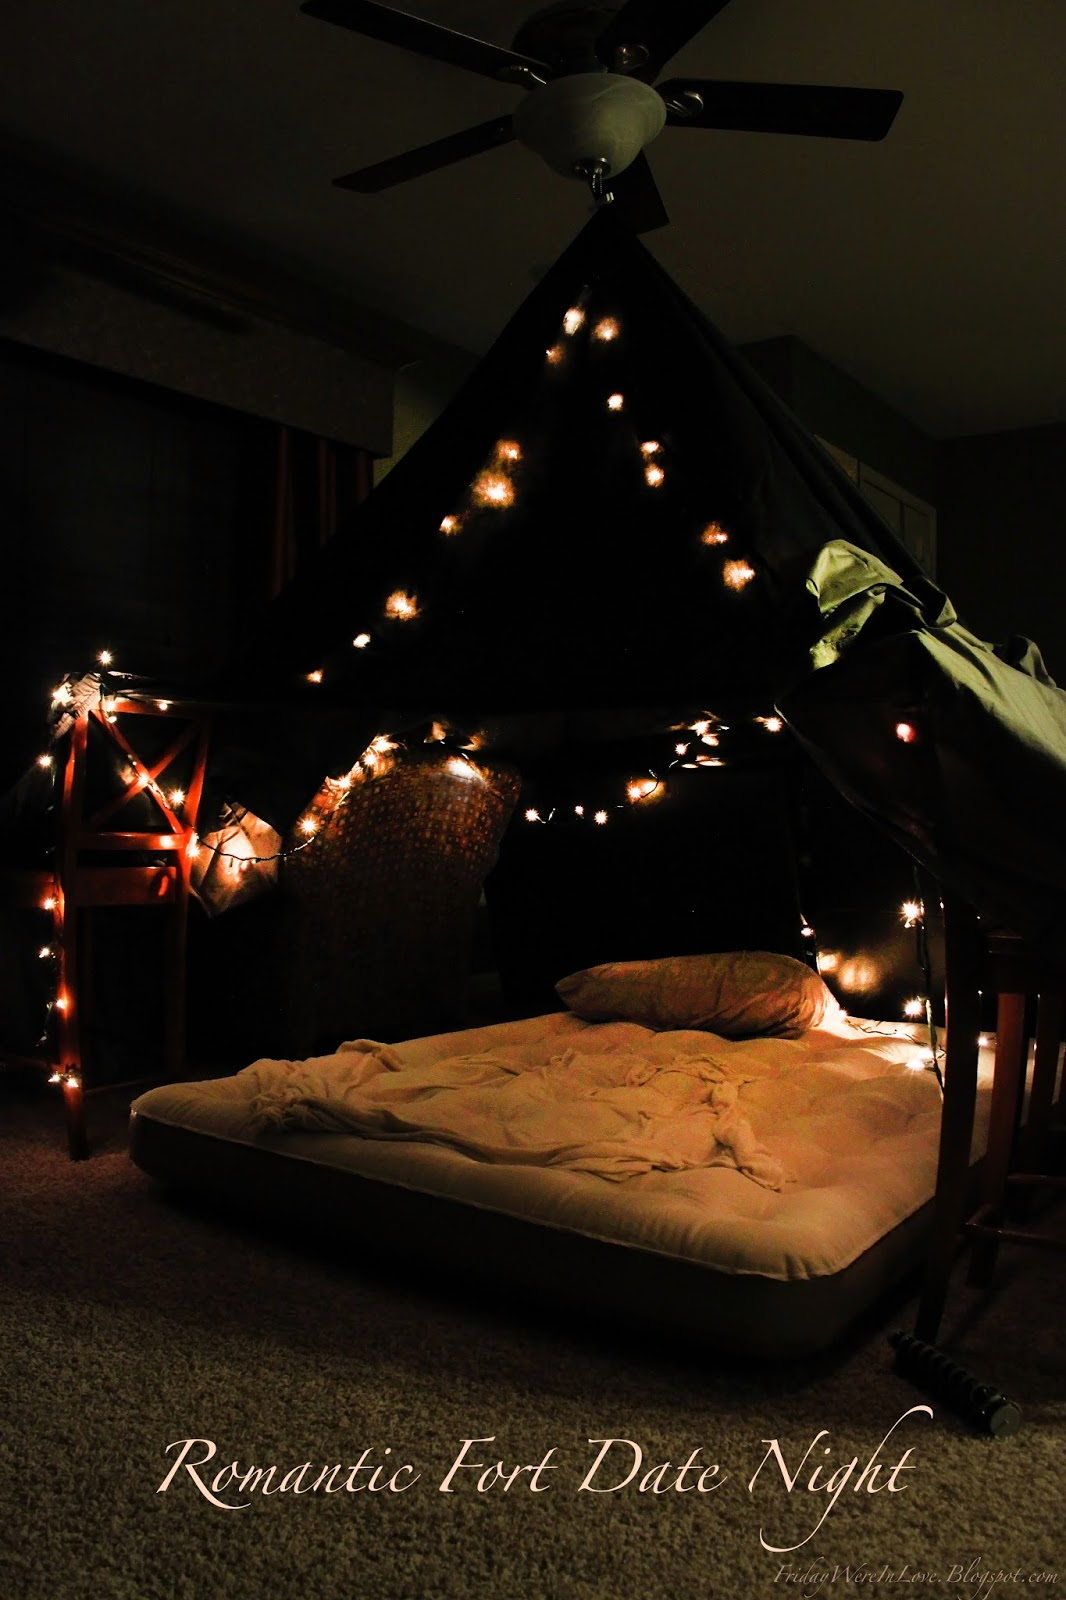 Friday We Re In Love Romantic Fort Date Night